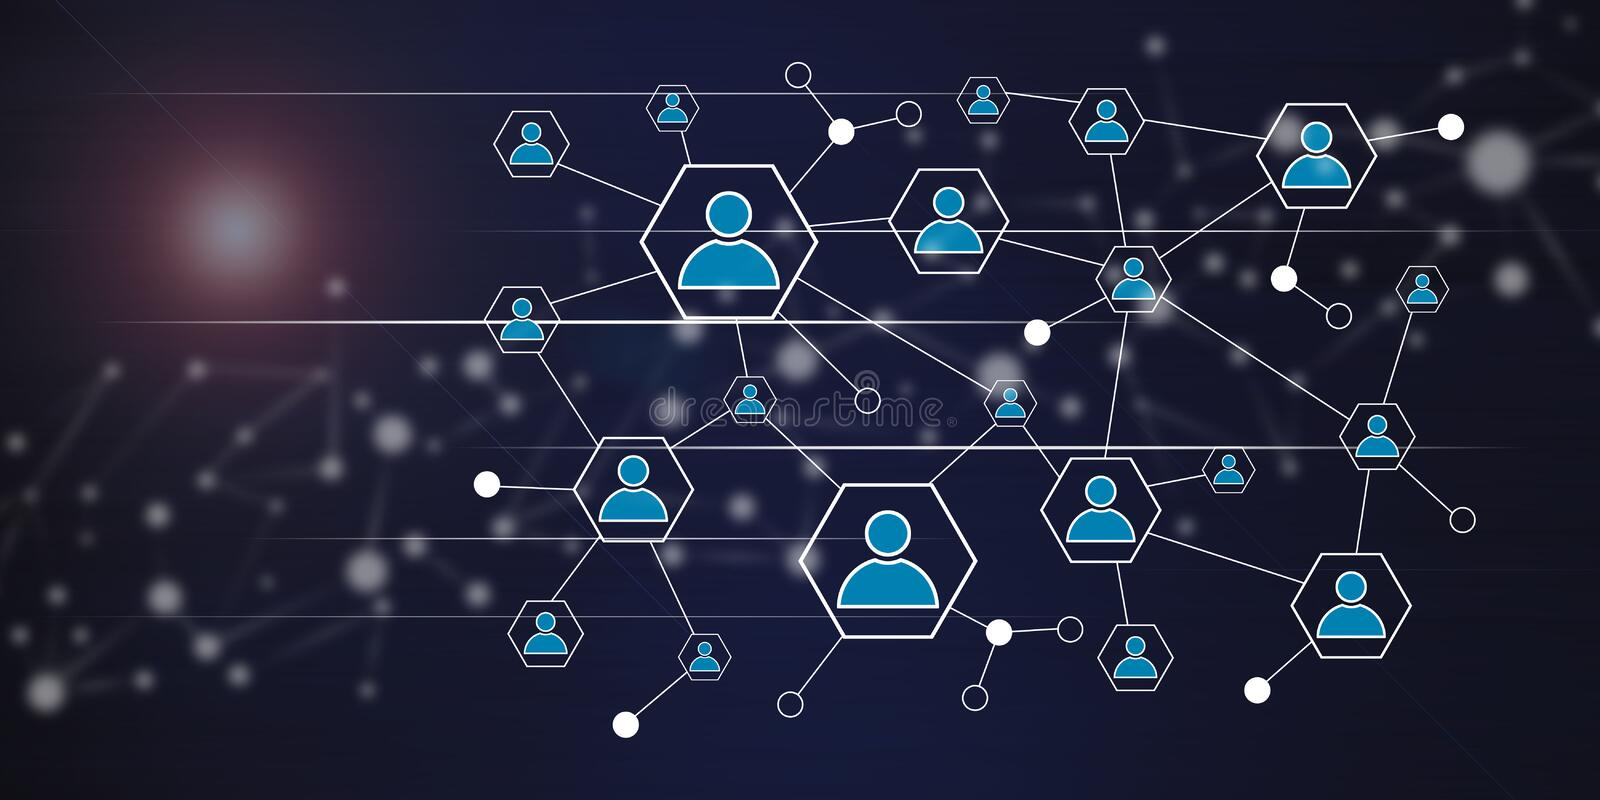 Concept of a social network. Illustration of a social network concept vector illustration